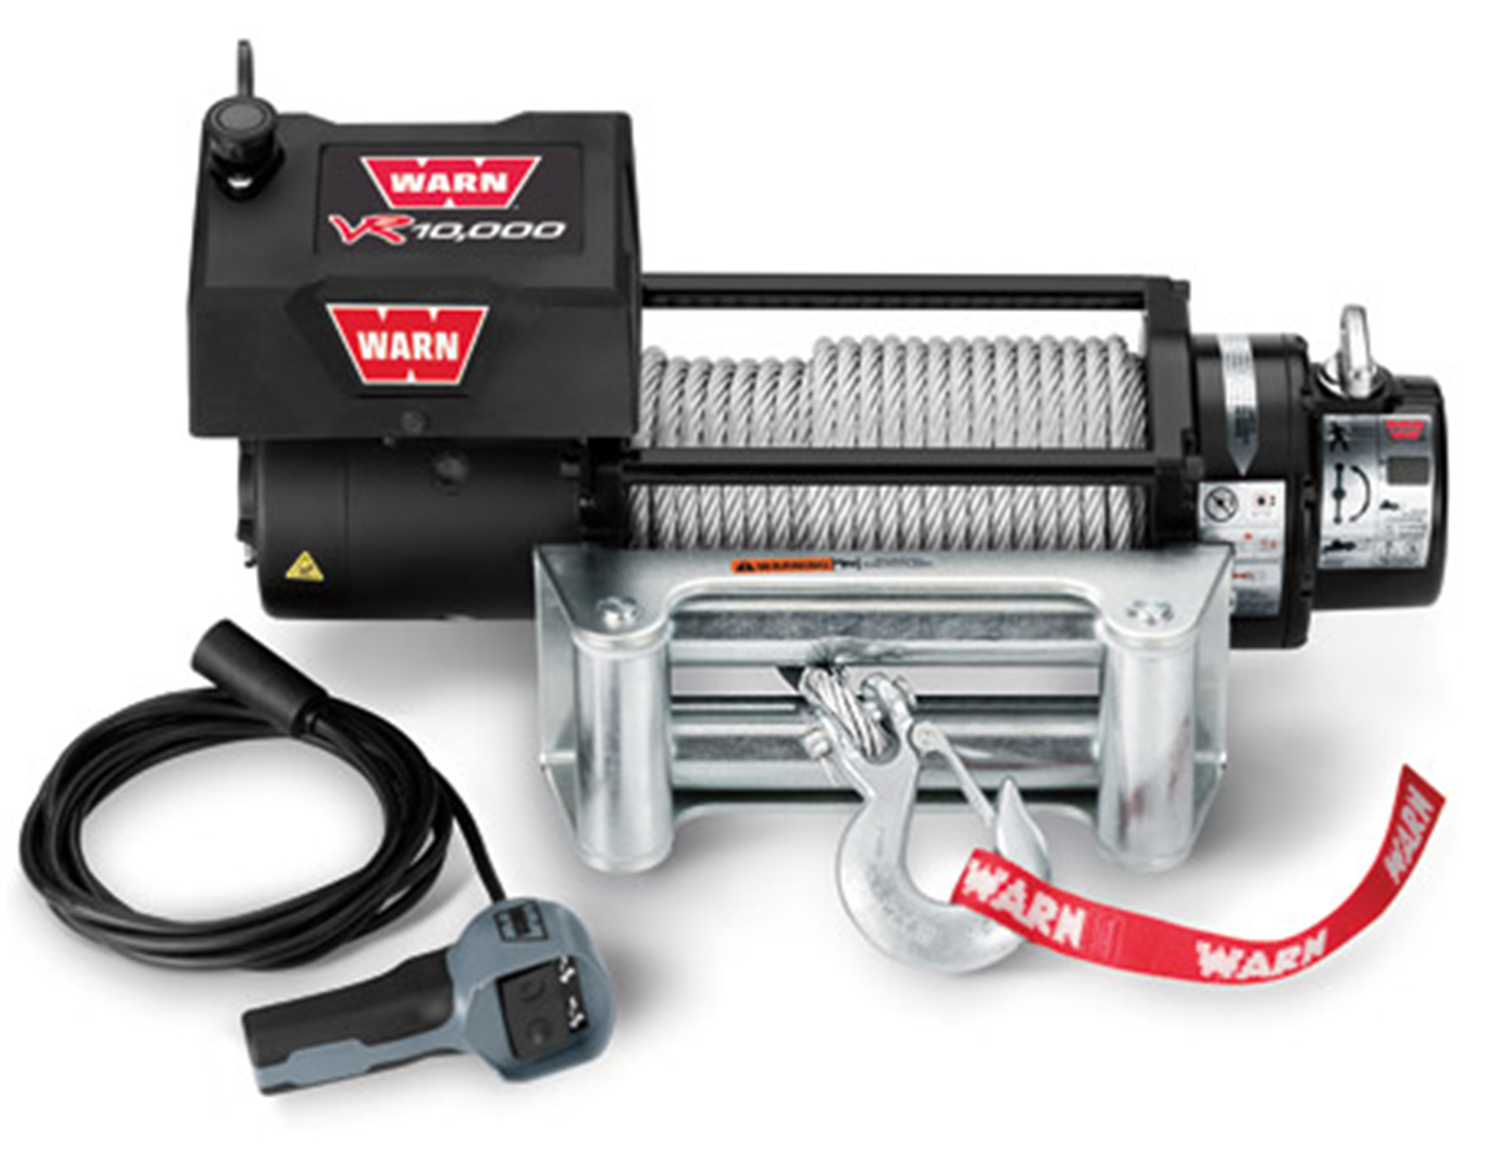 Warn 86255 VR10000; Self-Recovery Winch at Sears.com